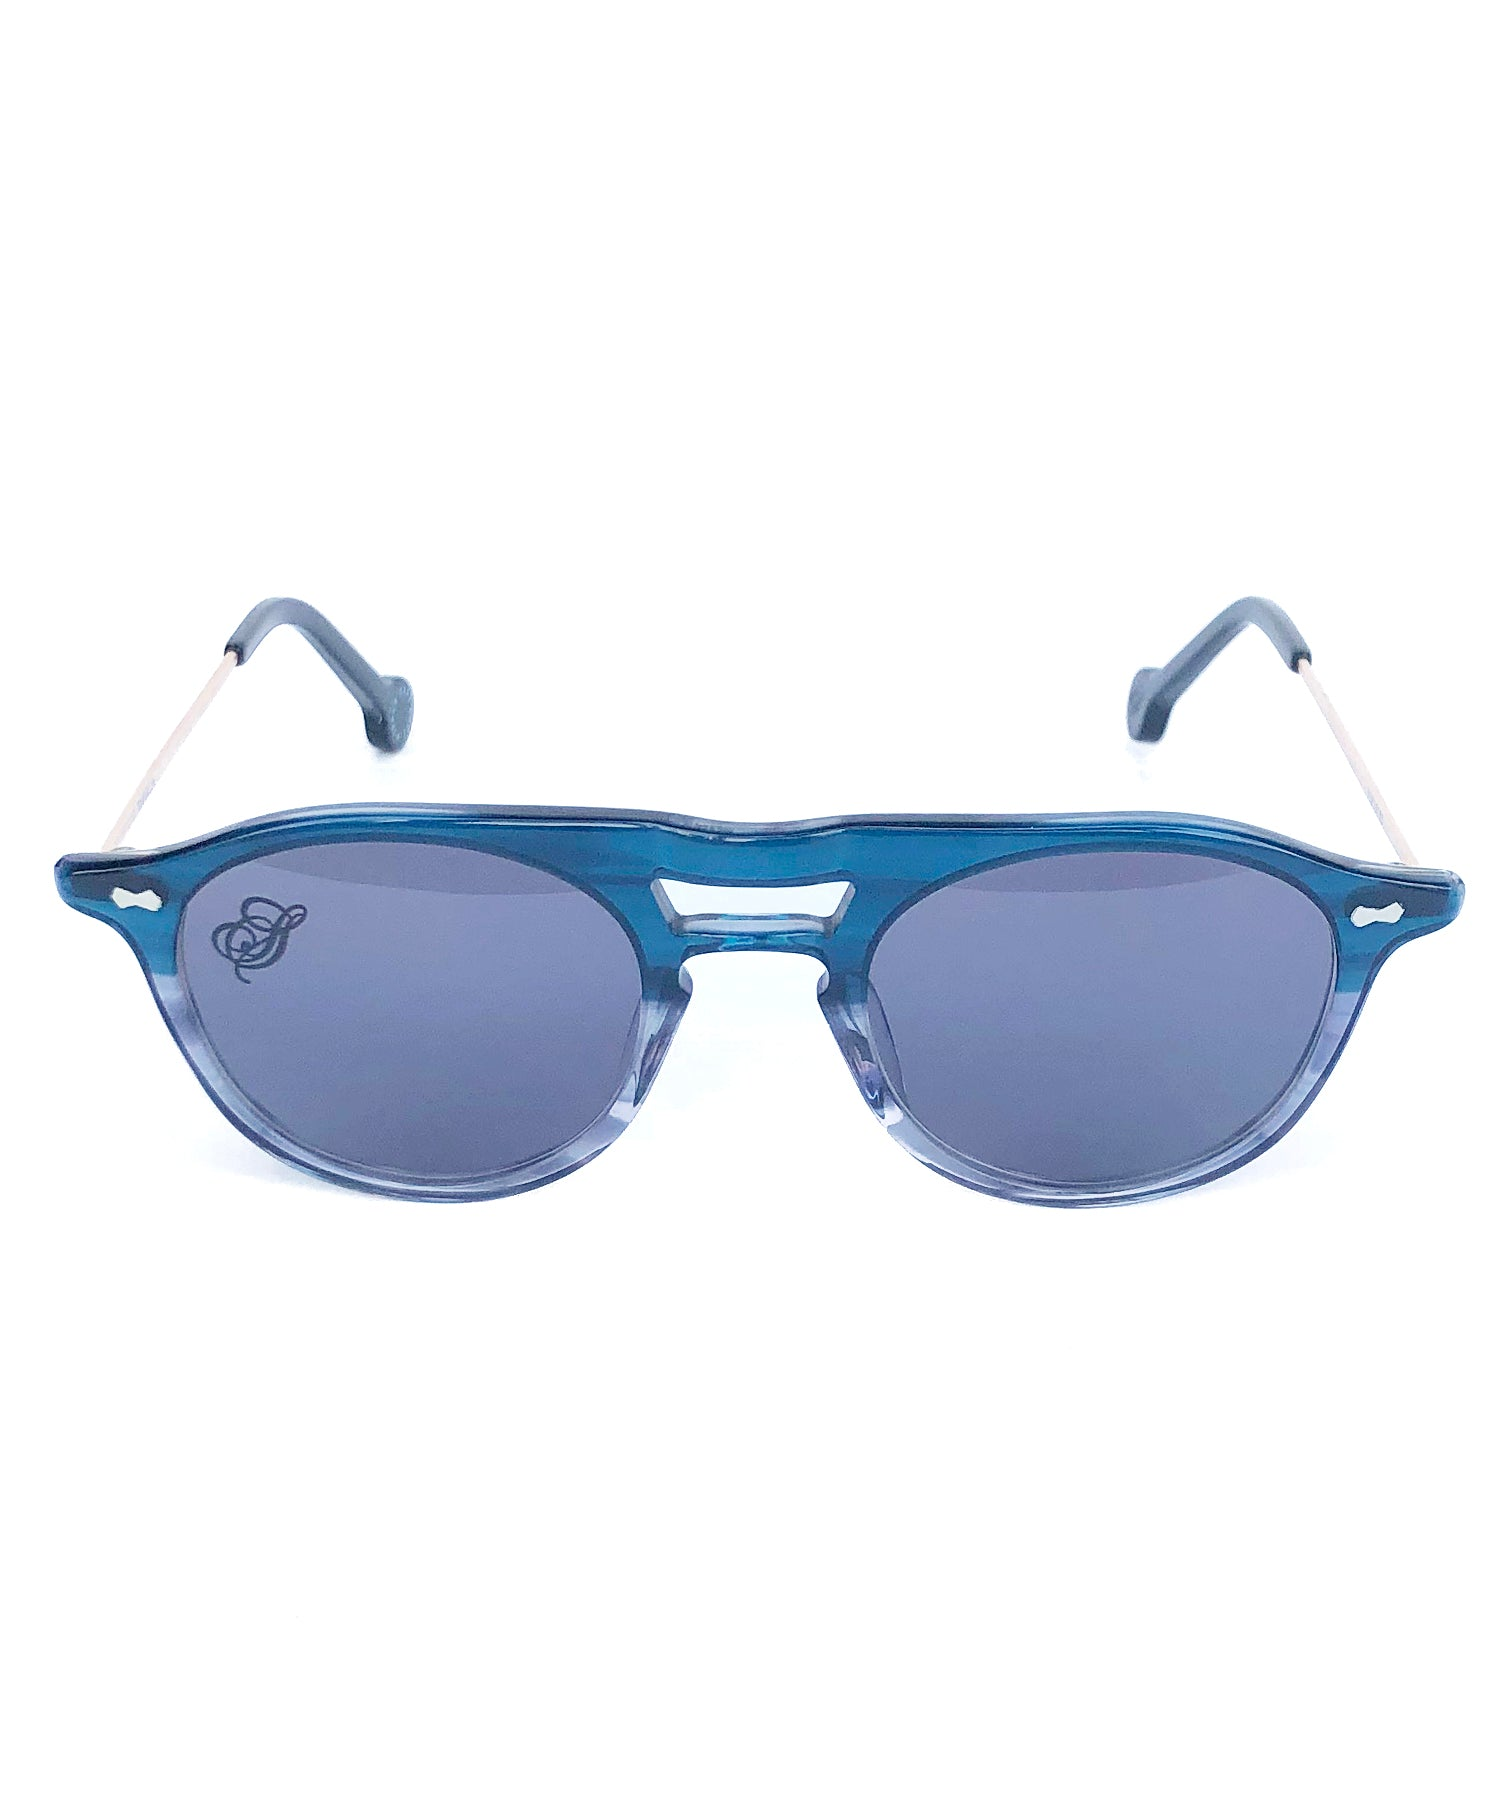 Load image into Gallery viewer, [Session] Sunglasses / Dark Blue Gray